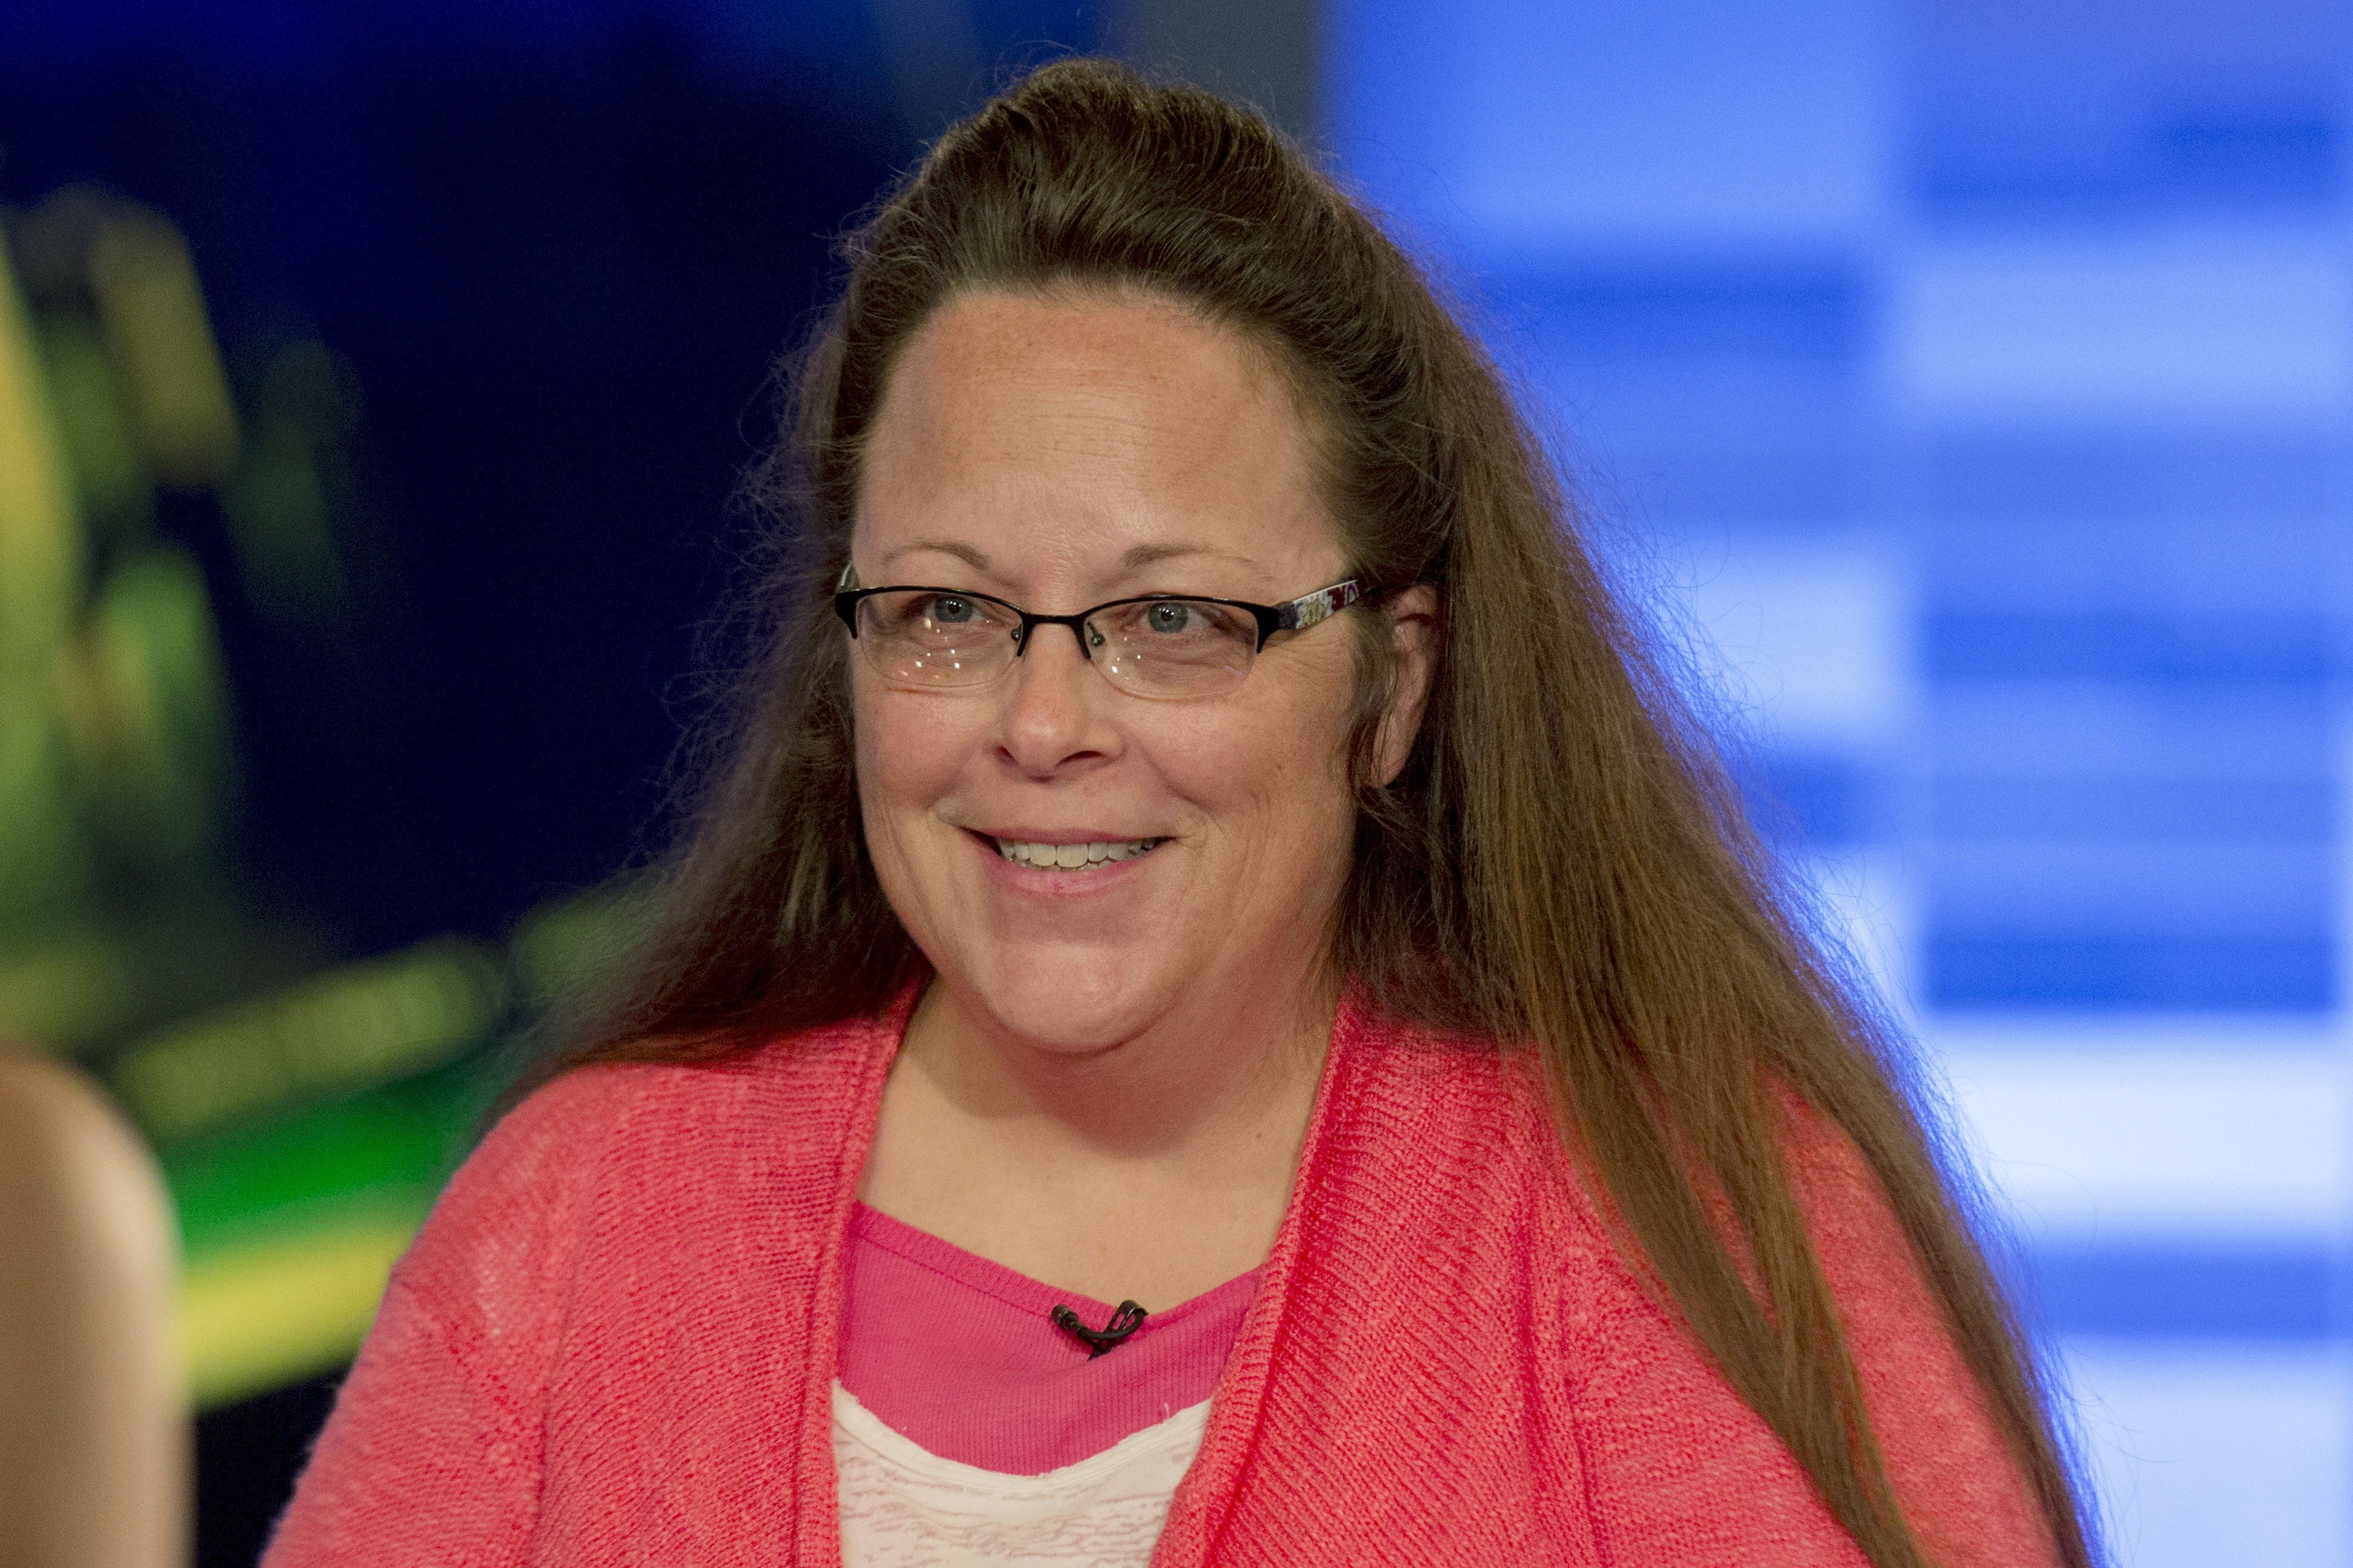 Kentucky county clerk Kim Davis speaks during an interview on Fox News Channel's 'The Kelly File' in New York September 23, 2015. A federal judge on Wednesday denied Davis a stay of his order requiring her office to issue marriage licenses to all eligible couples who want one, the latest setback for the Kentucky county clerk who went to jail rather than issue licenses to gay couples. REUTERS/Brendan McDermid